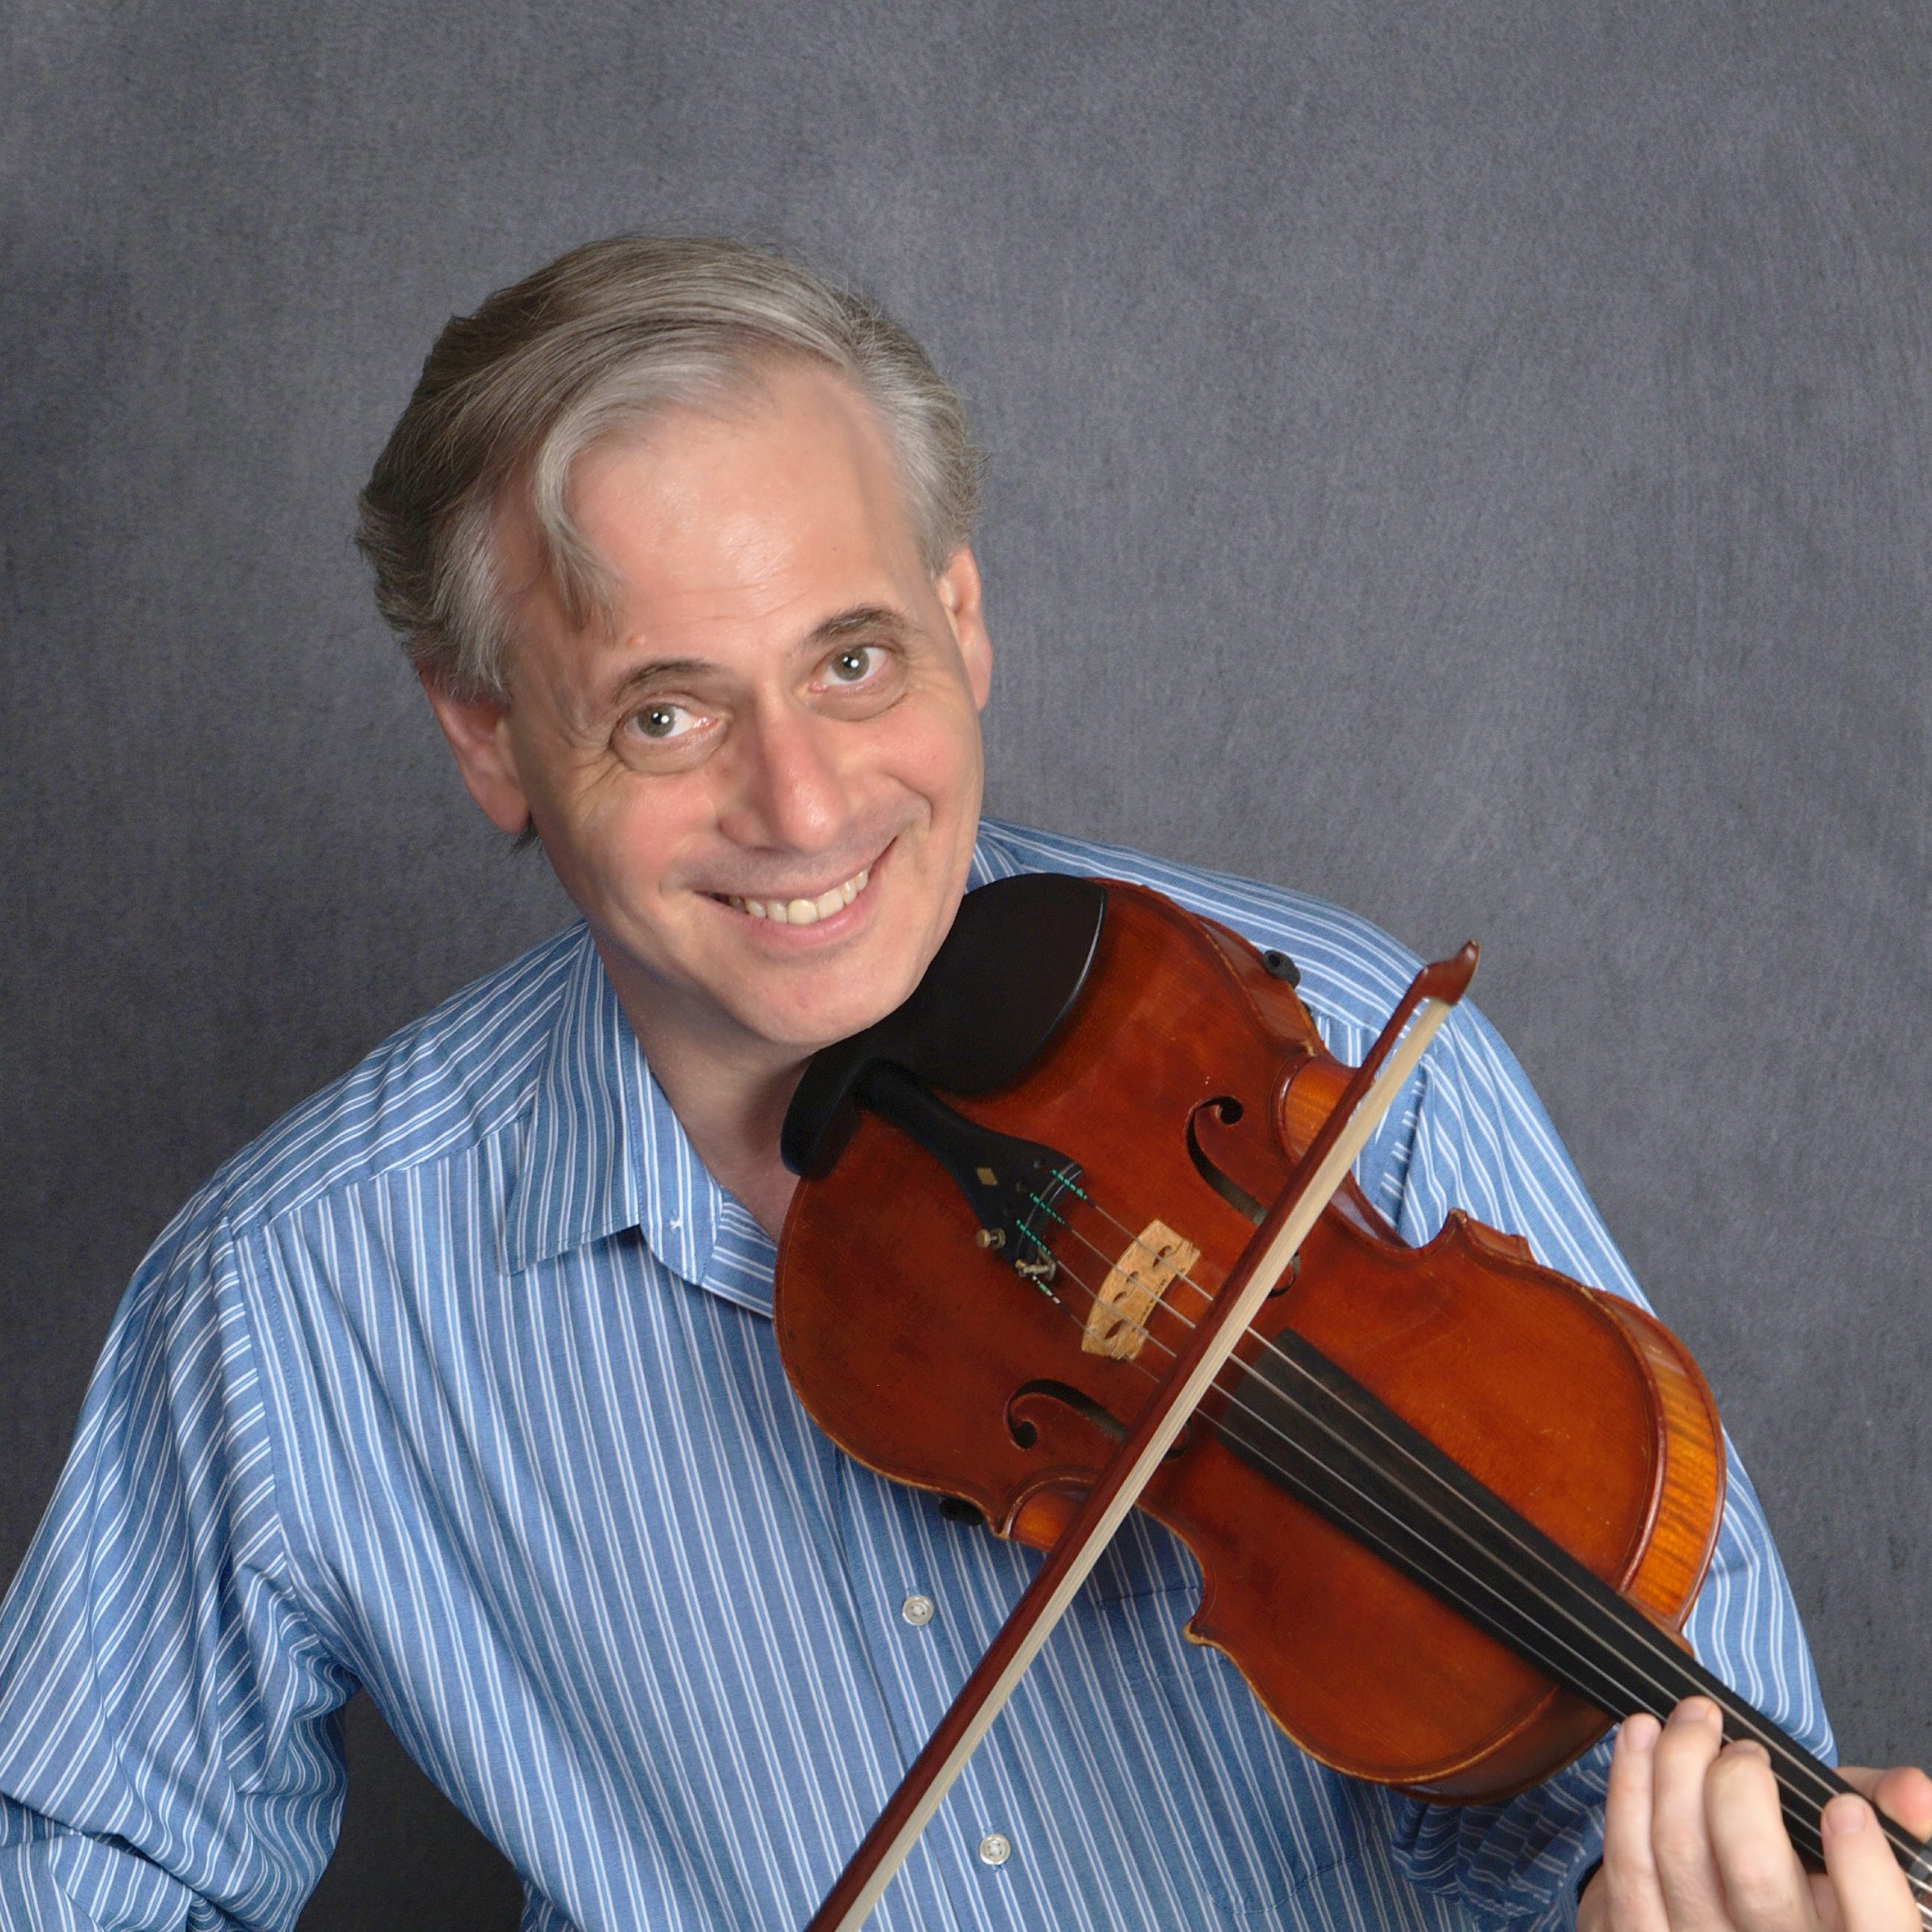 Anthony Hyatt is a violinist and multimedia teaching artist who works with many health care and human service providers in the Washington DC area.